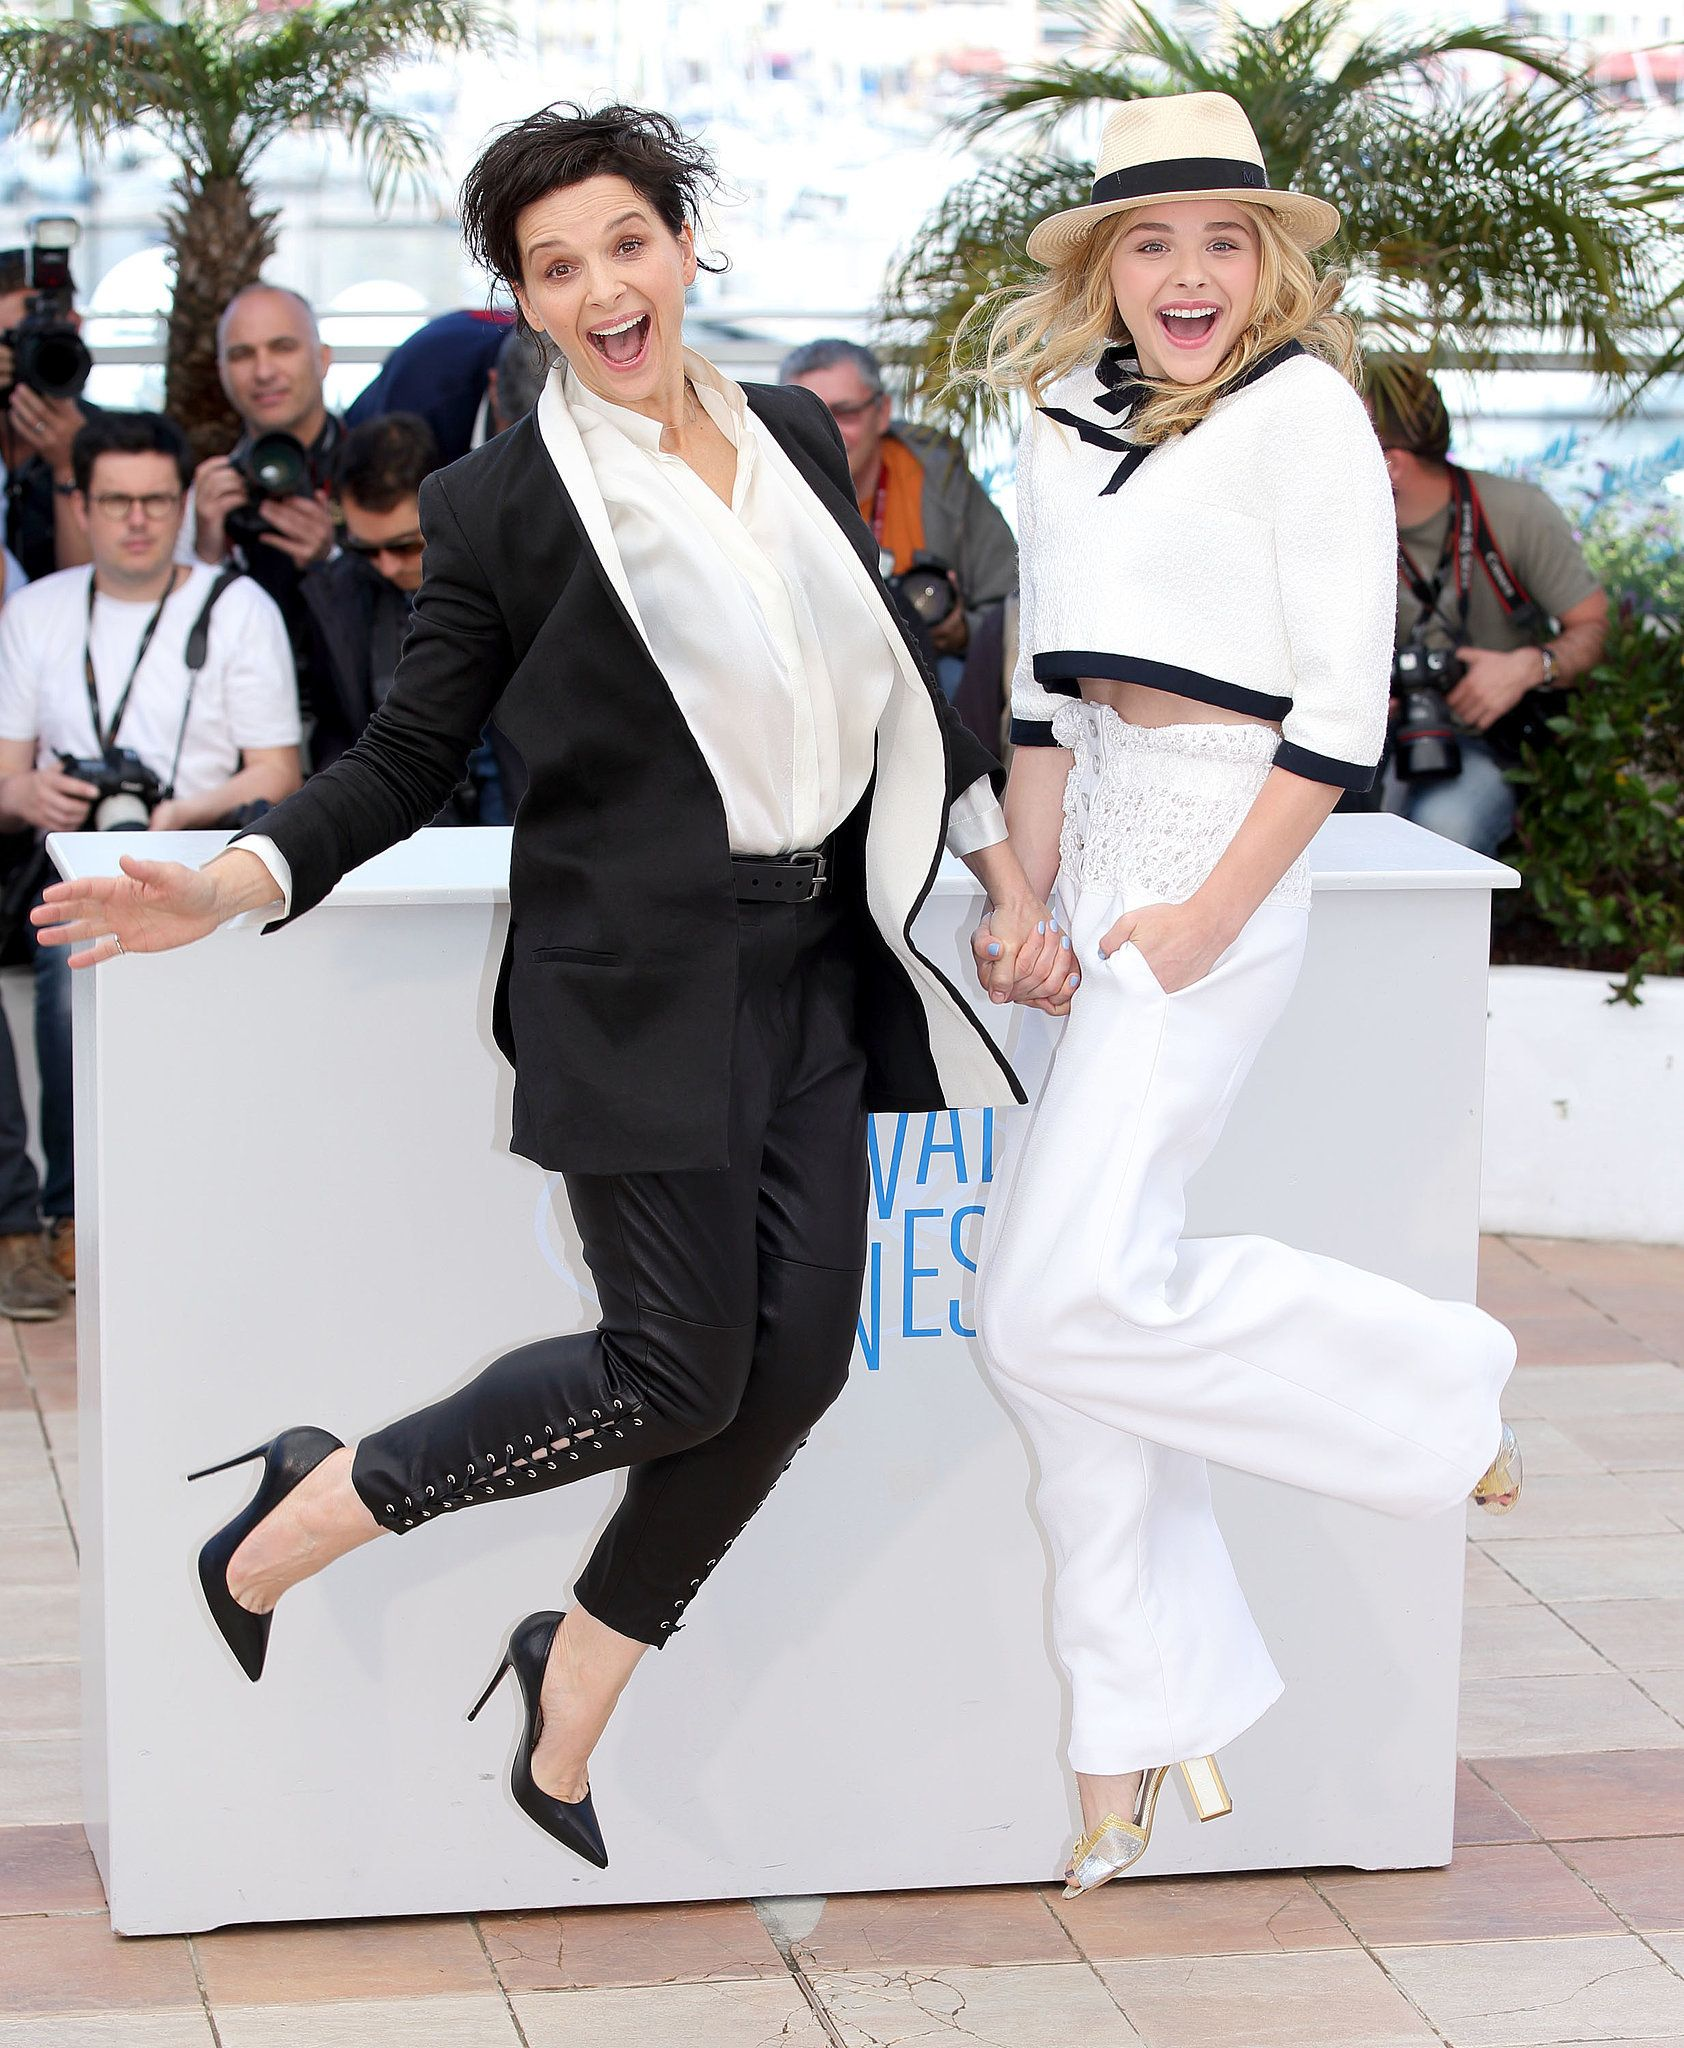 Chloe Grace Moretz And Juliette Binoche Got Animated While Promoting Clouds Of Sils Maria